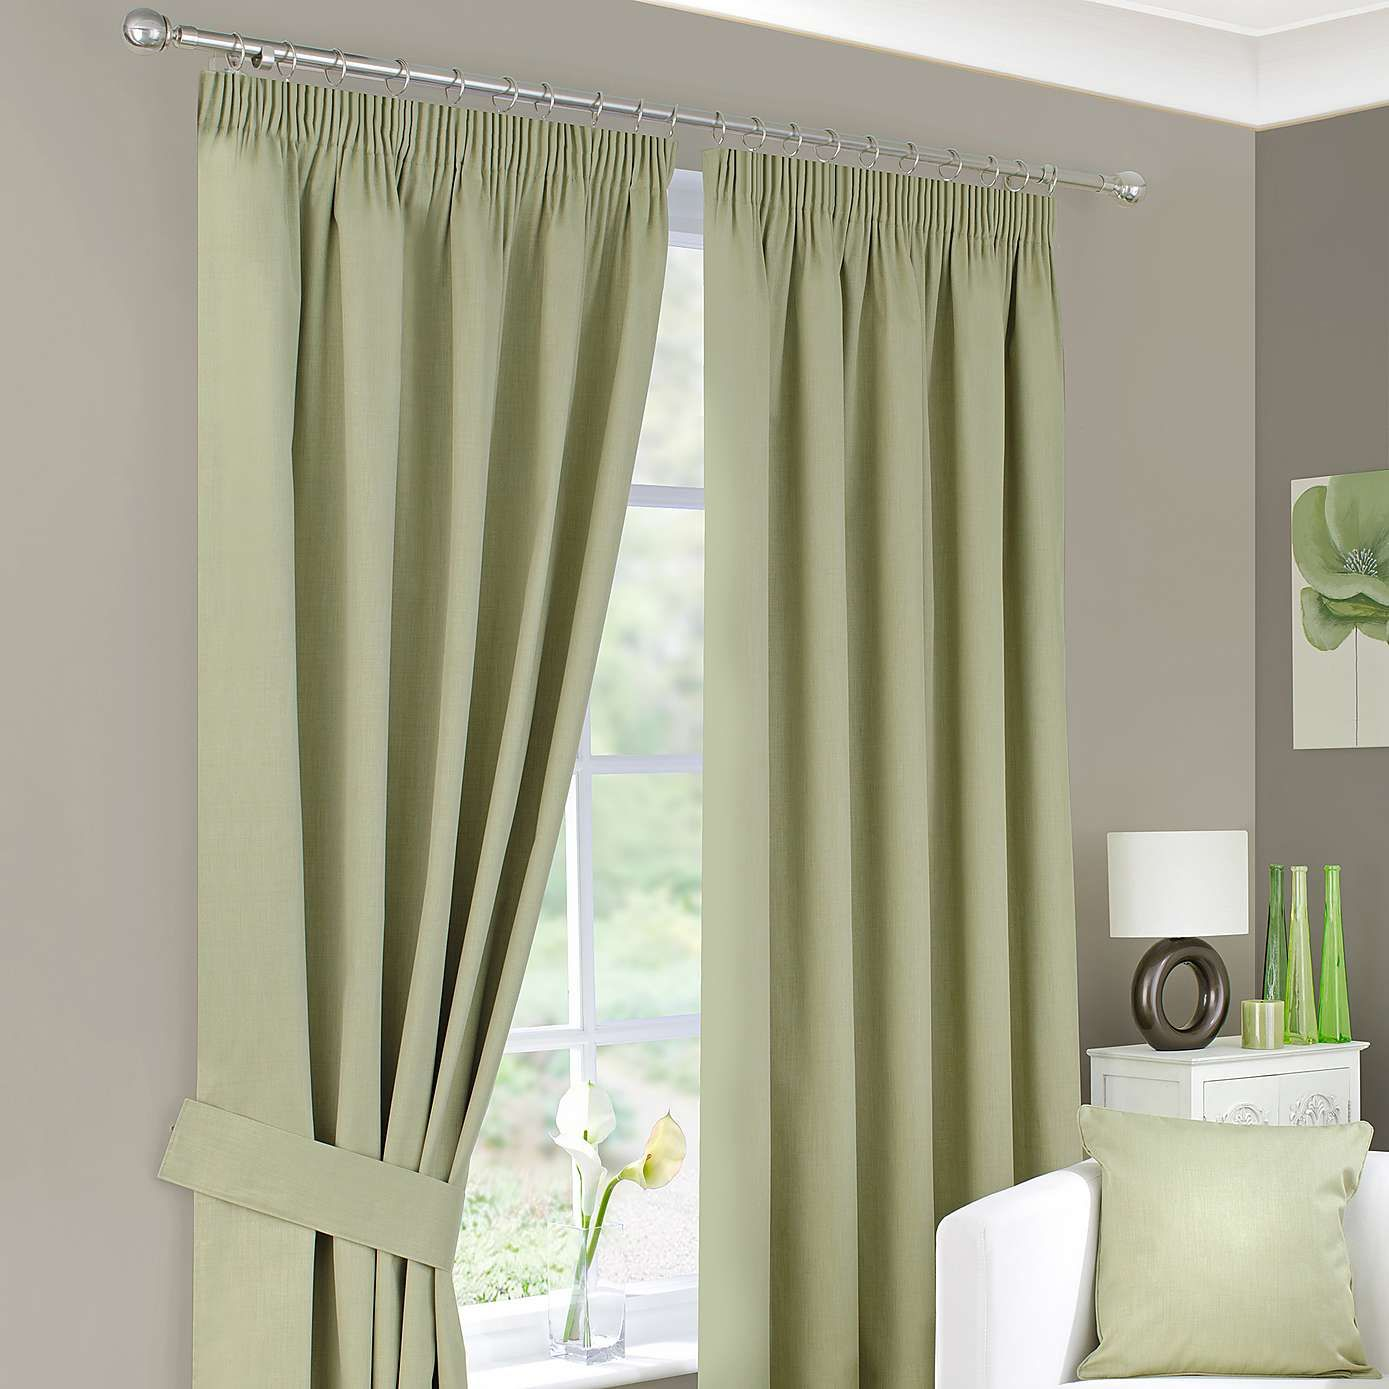 Green bedroom curtains - Green Solar Blackout Pencil Pleat Curtain Collection Dunelm